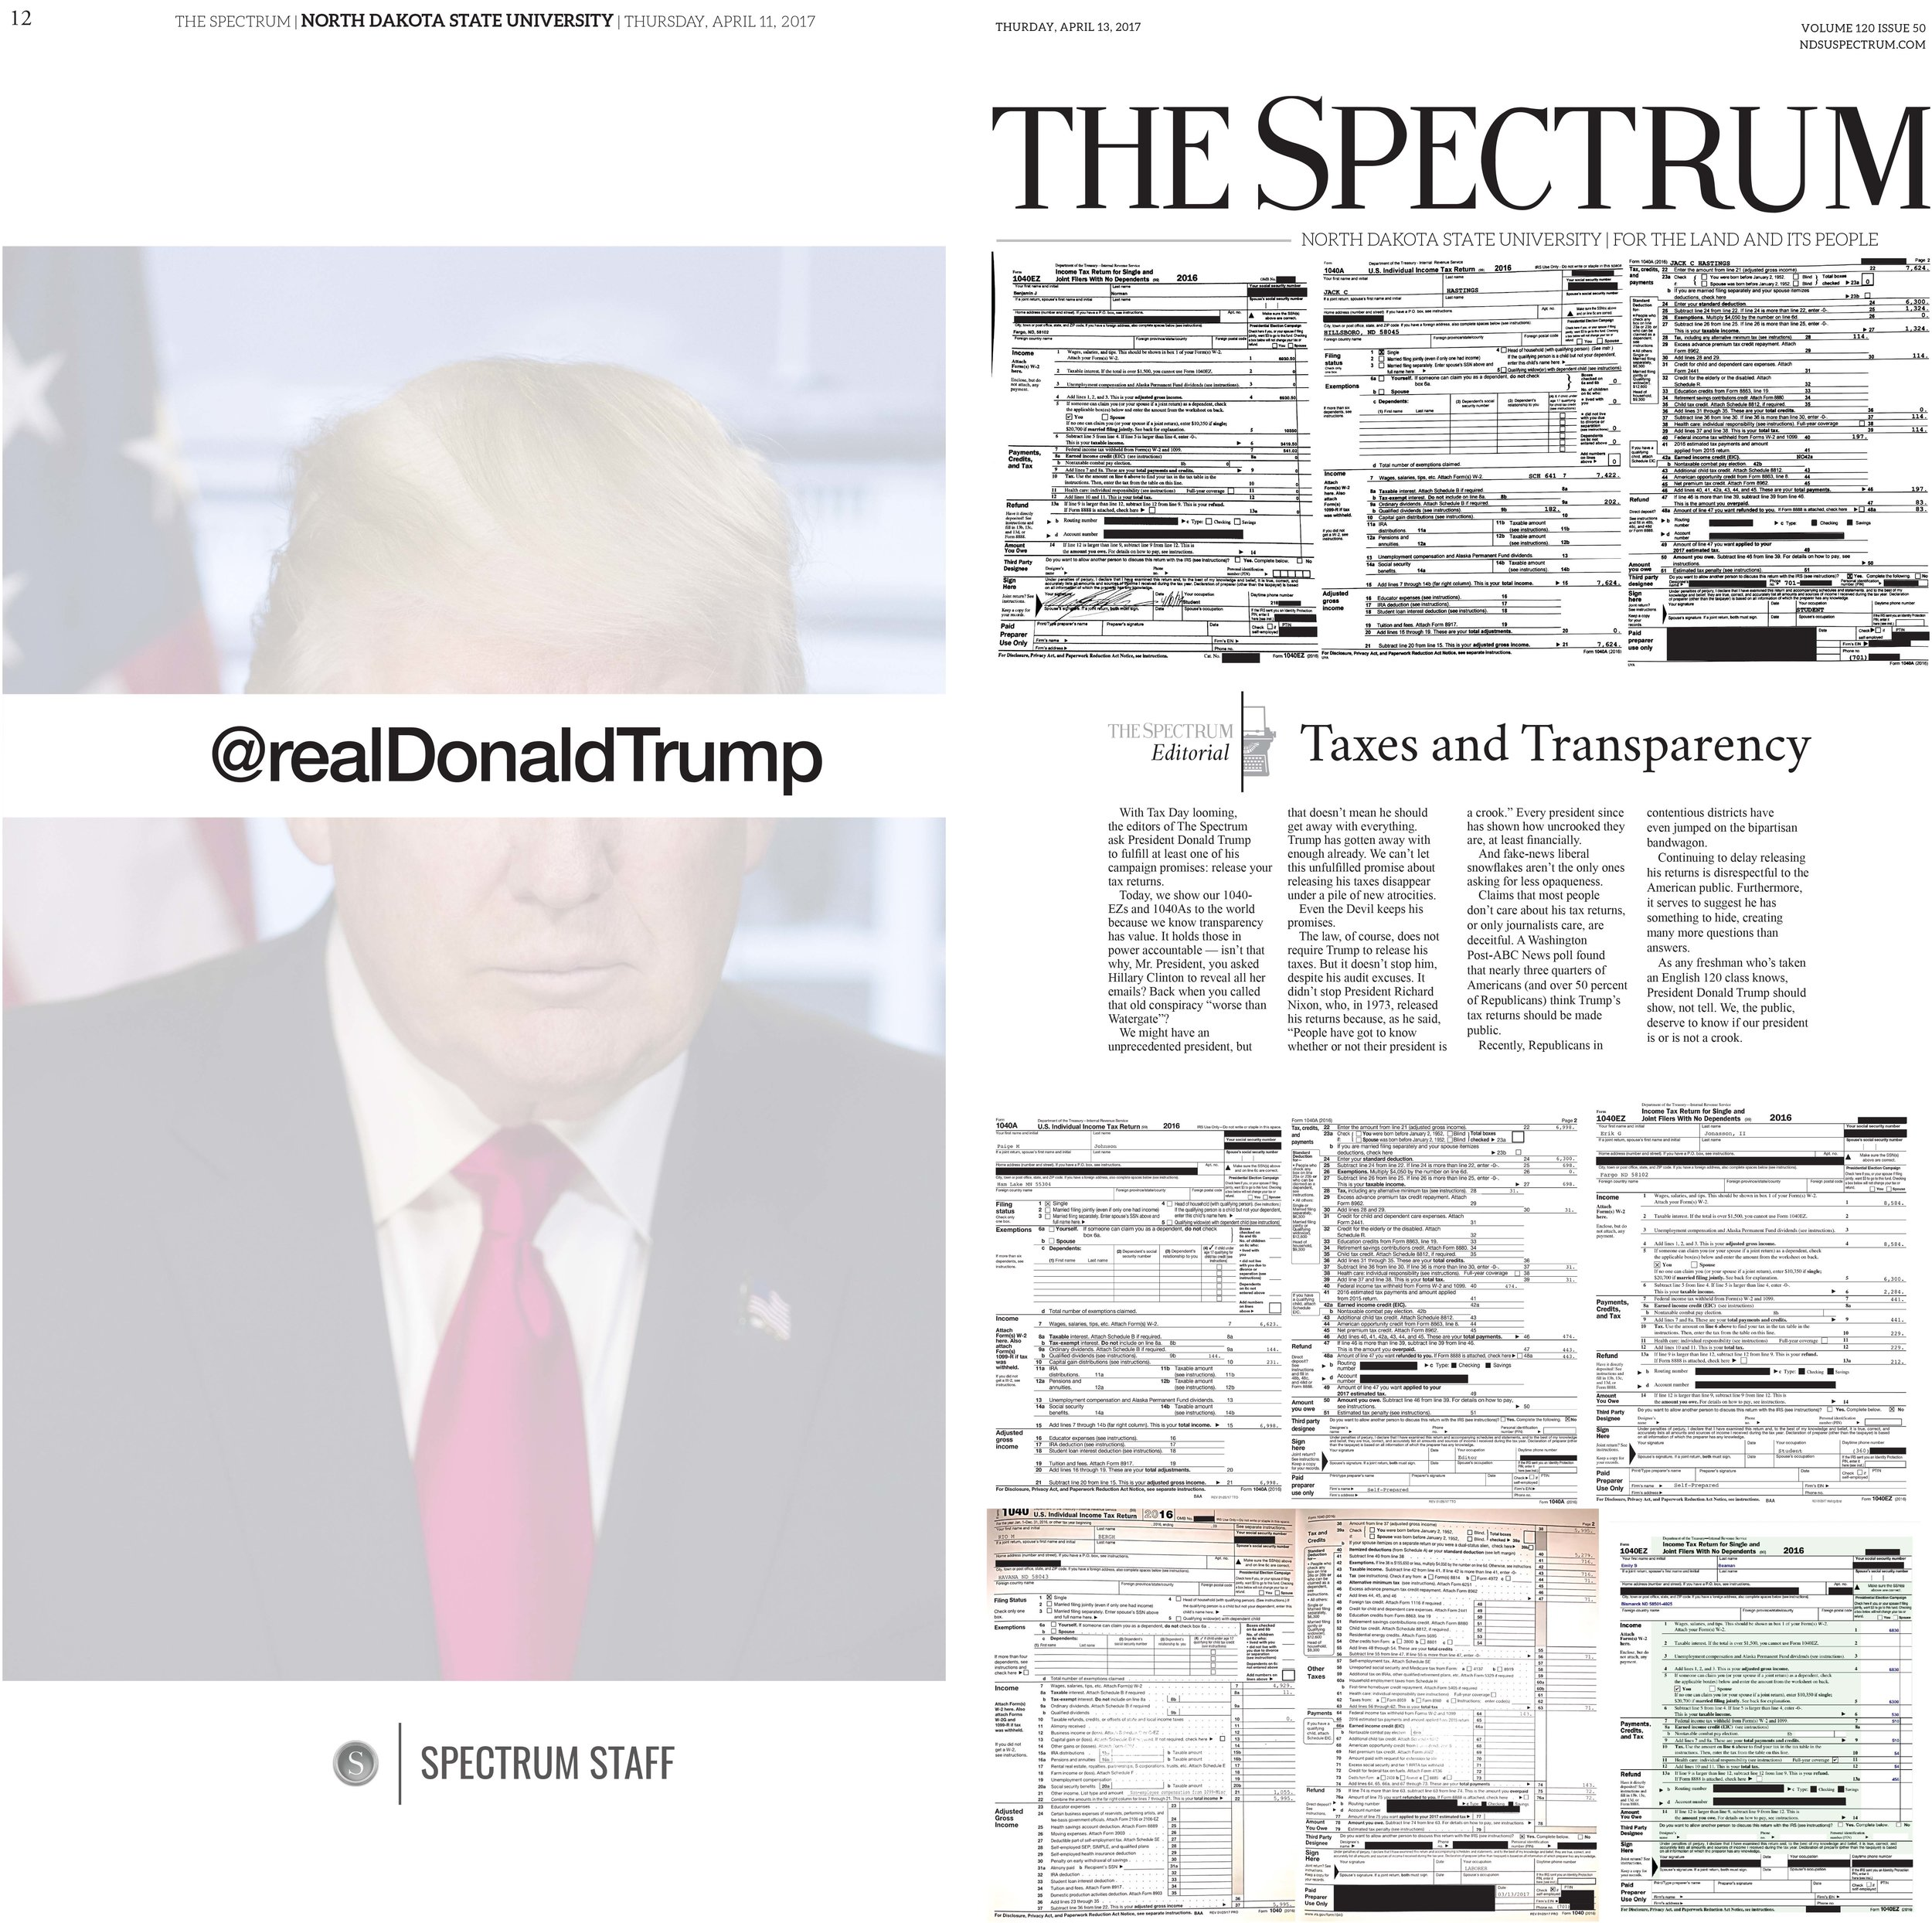 - Front and back page of our broadsheet on tax day in April 2017. A staff editorial was published along with the tax returns of our senior editors.